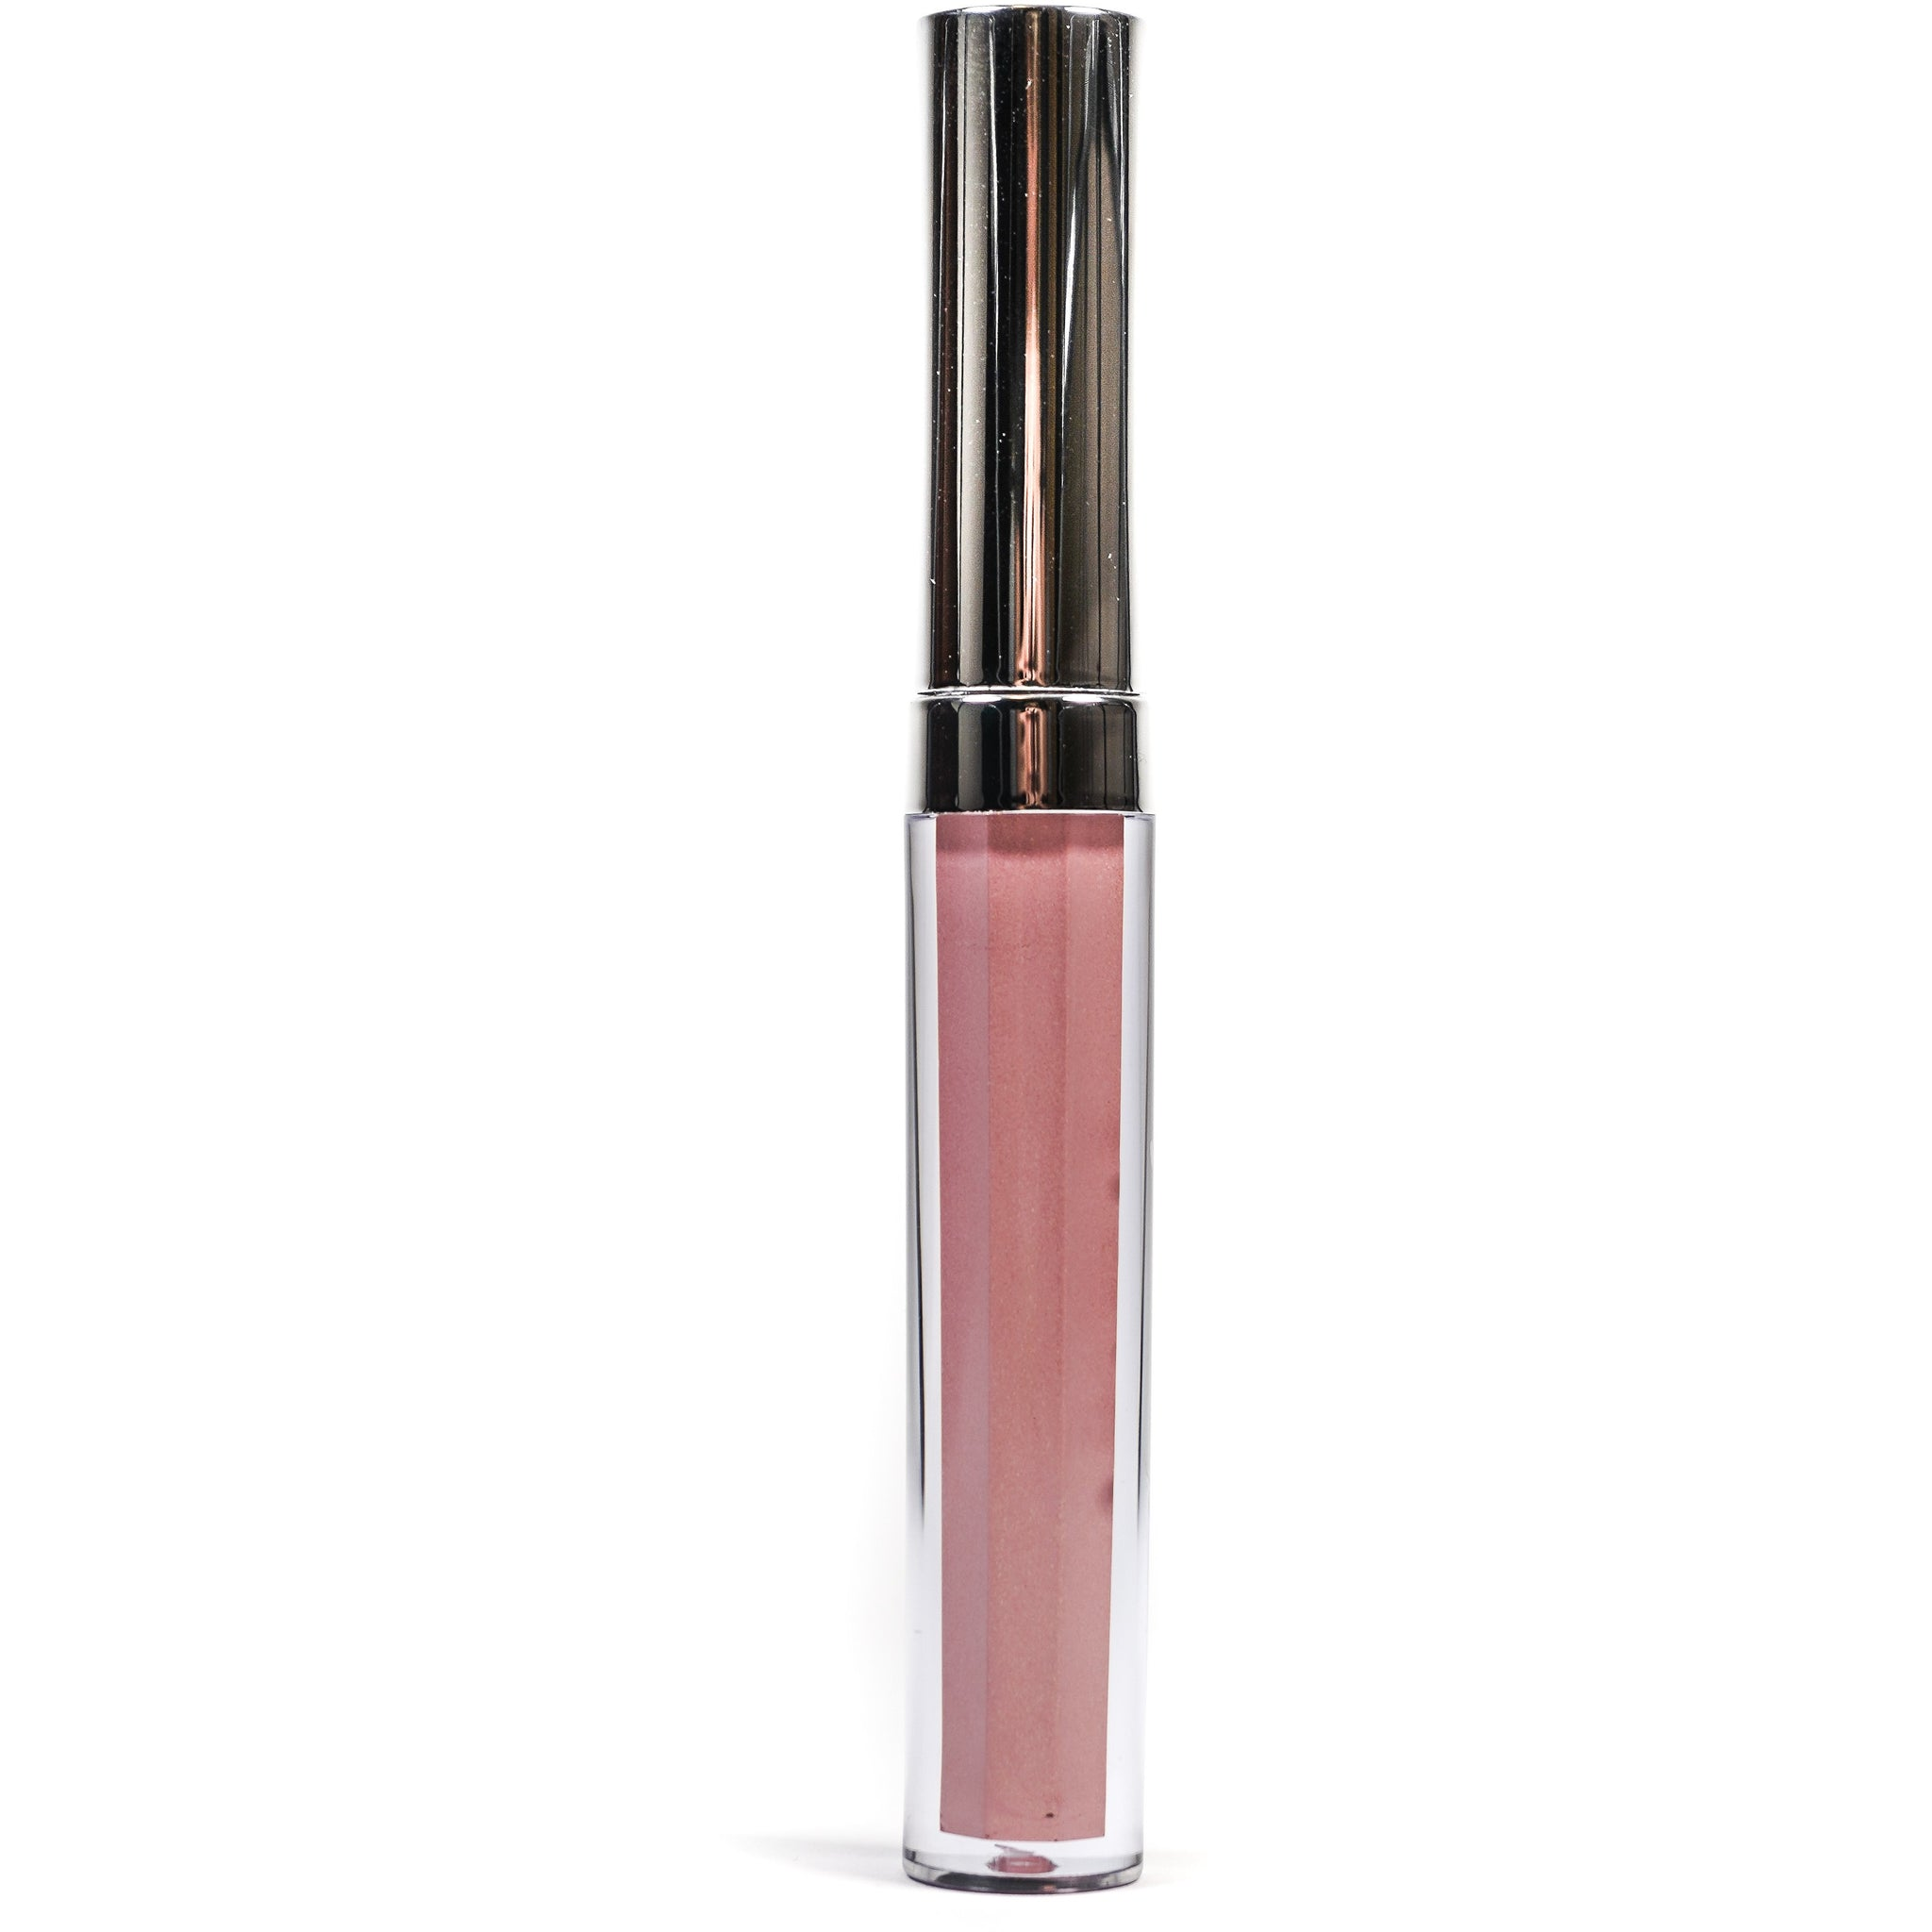 Fearless Liquefied Lipstick - 4mL